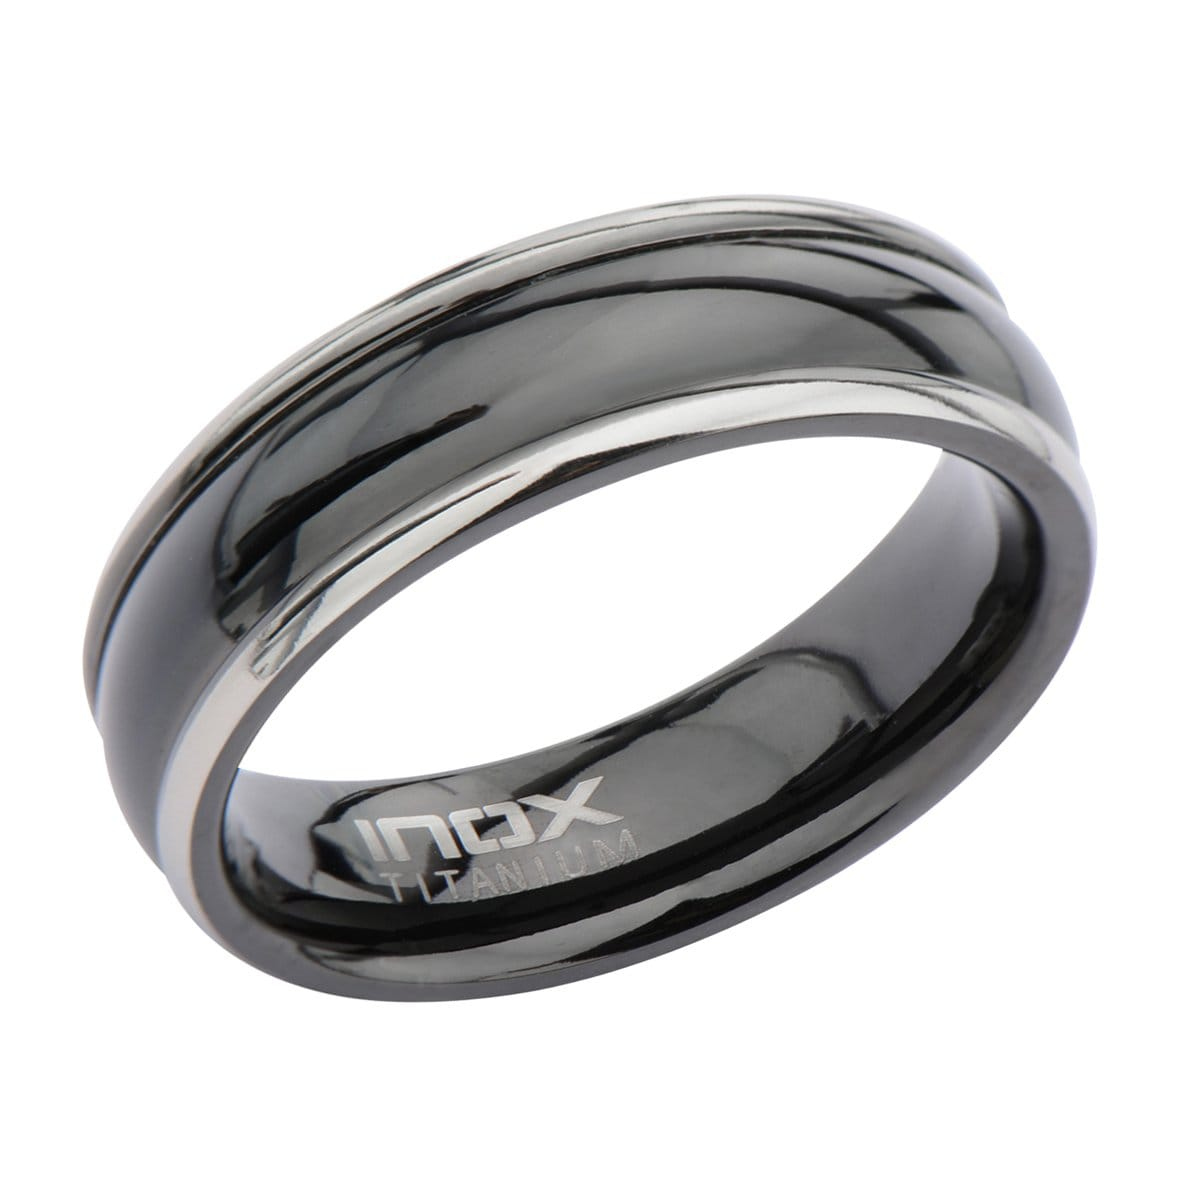 Black Stainless Steel & Silver Titanium Border Glossy Band Ring